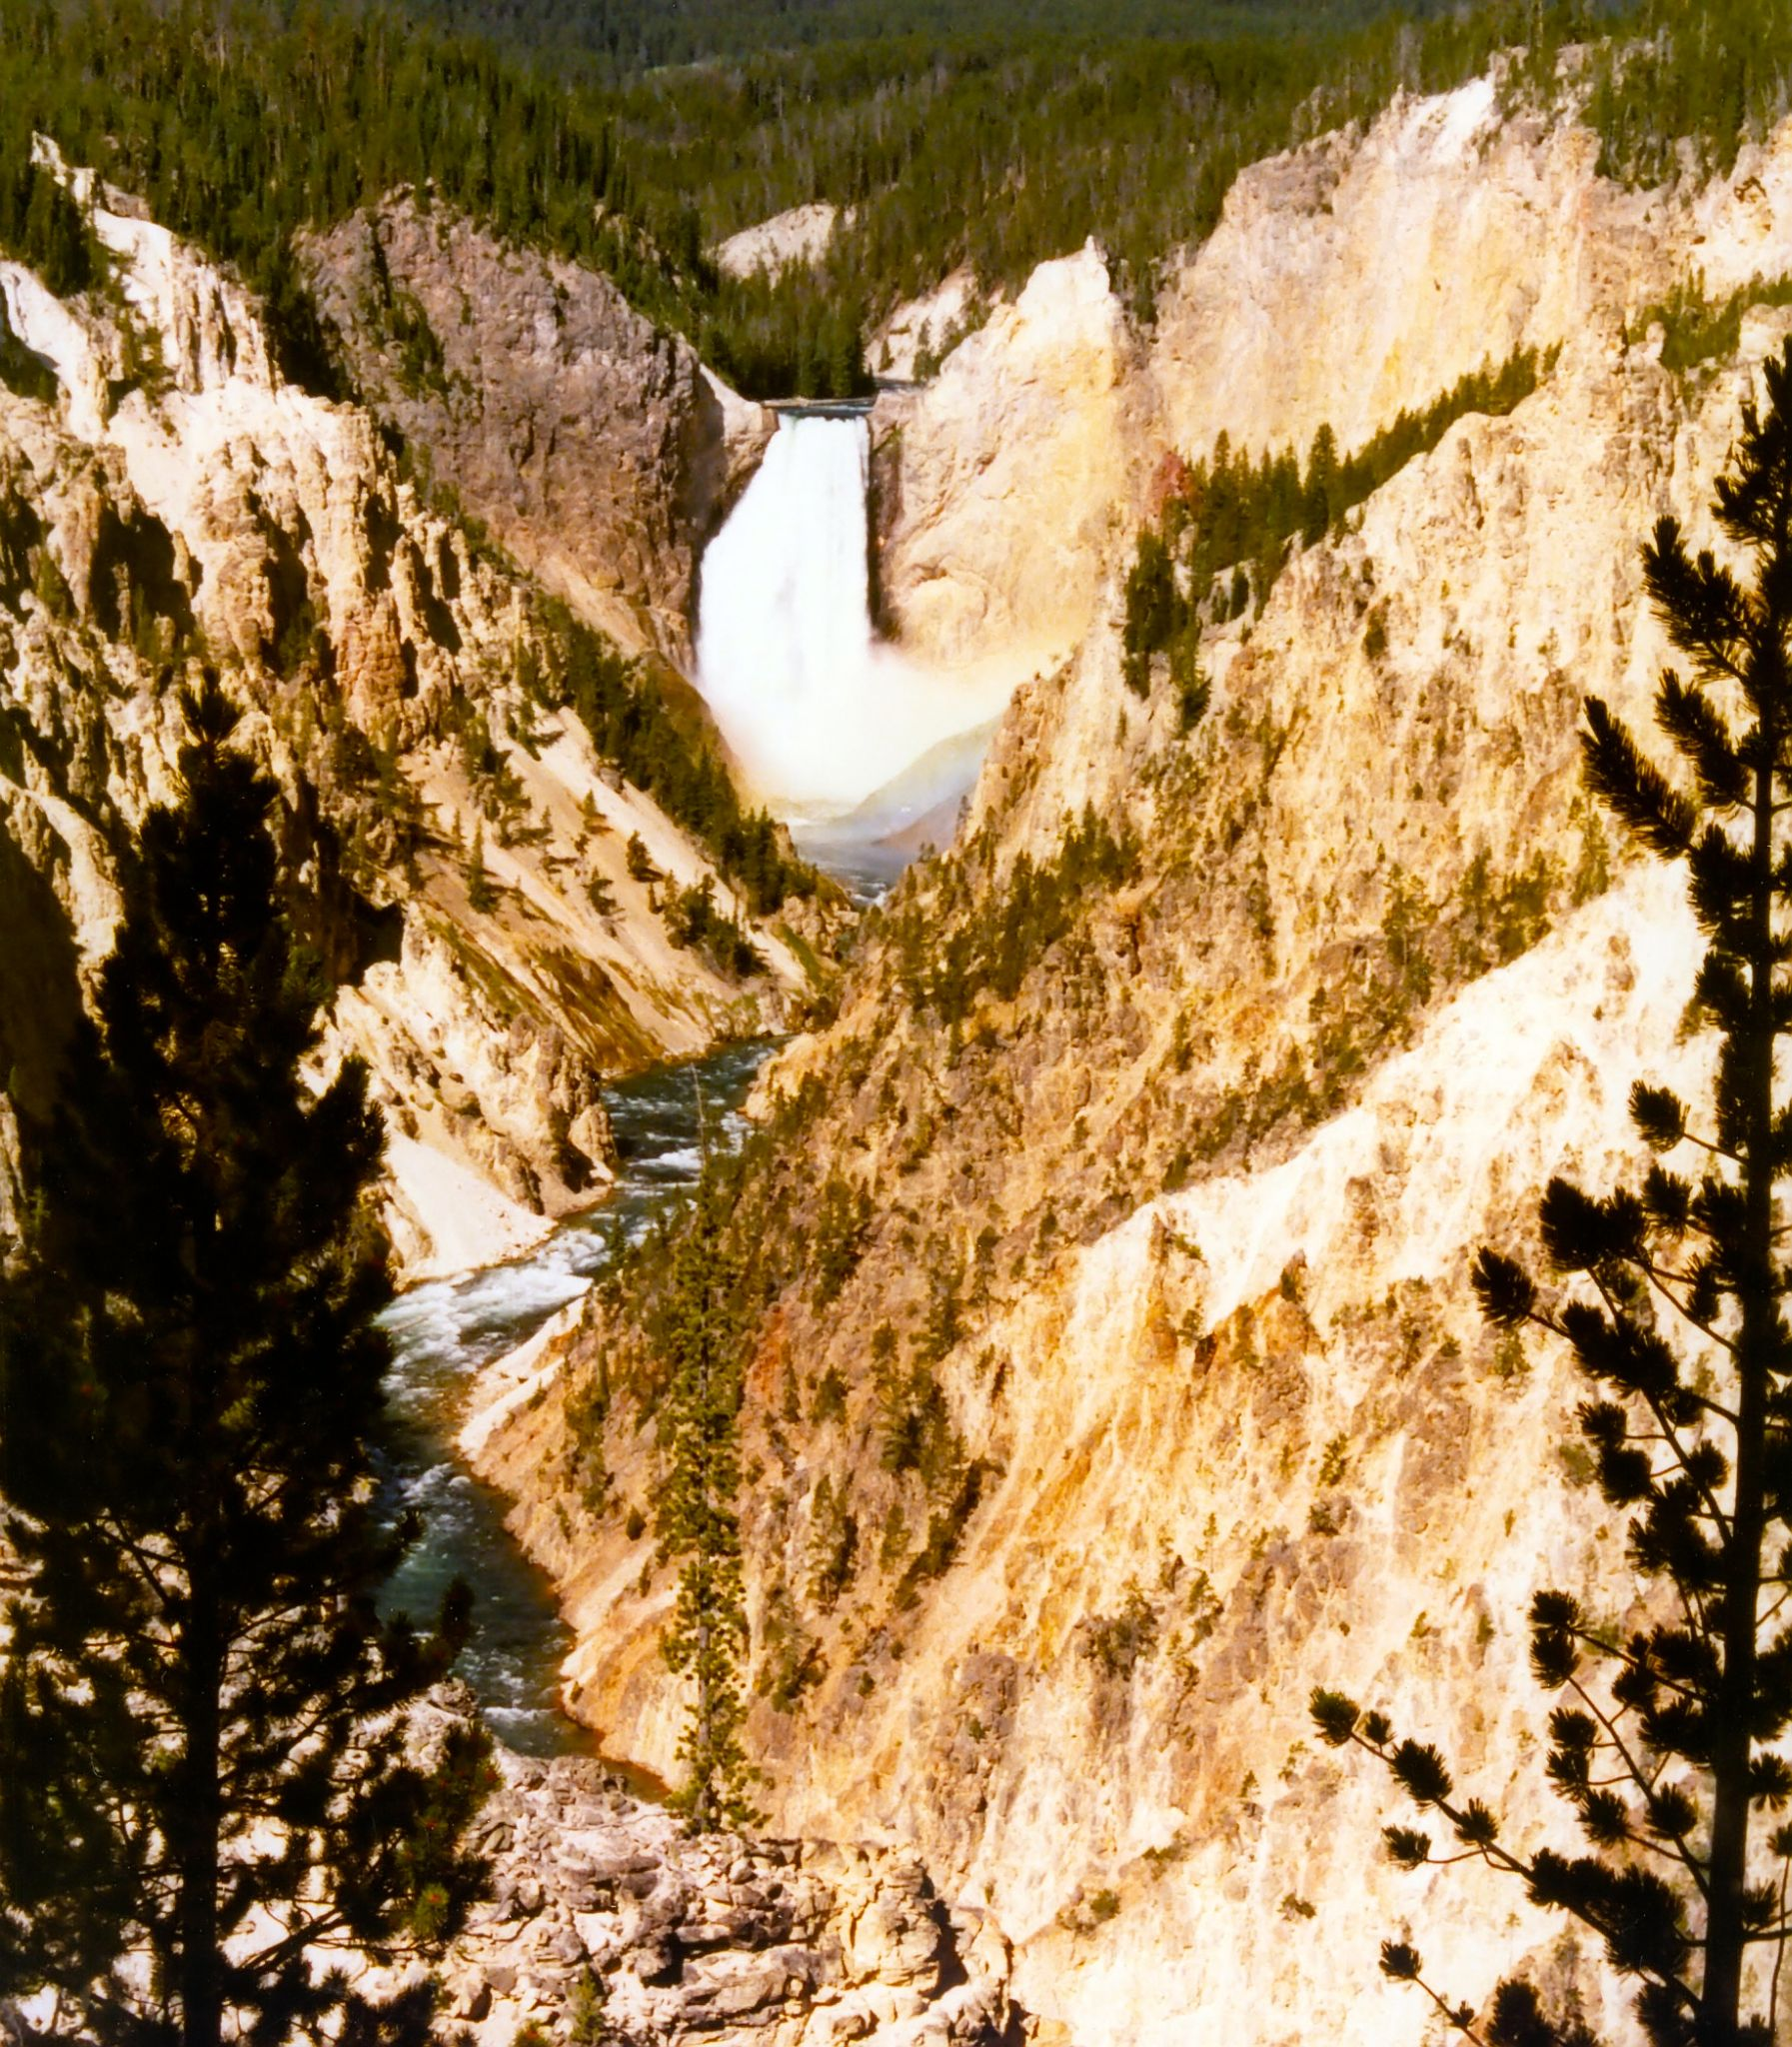 Lower Falls of the Yellowstone River by BadgerBob